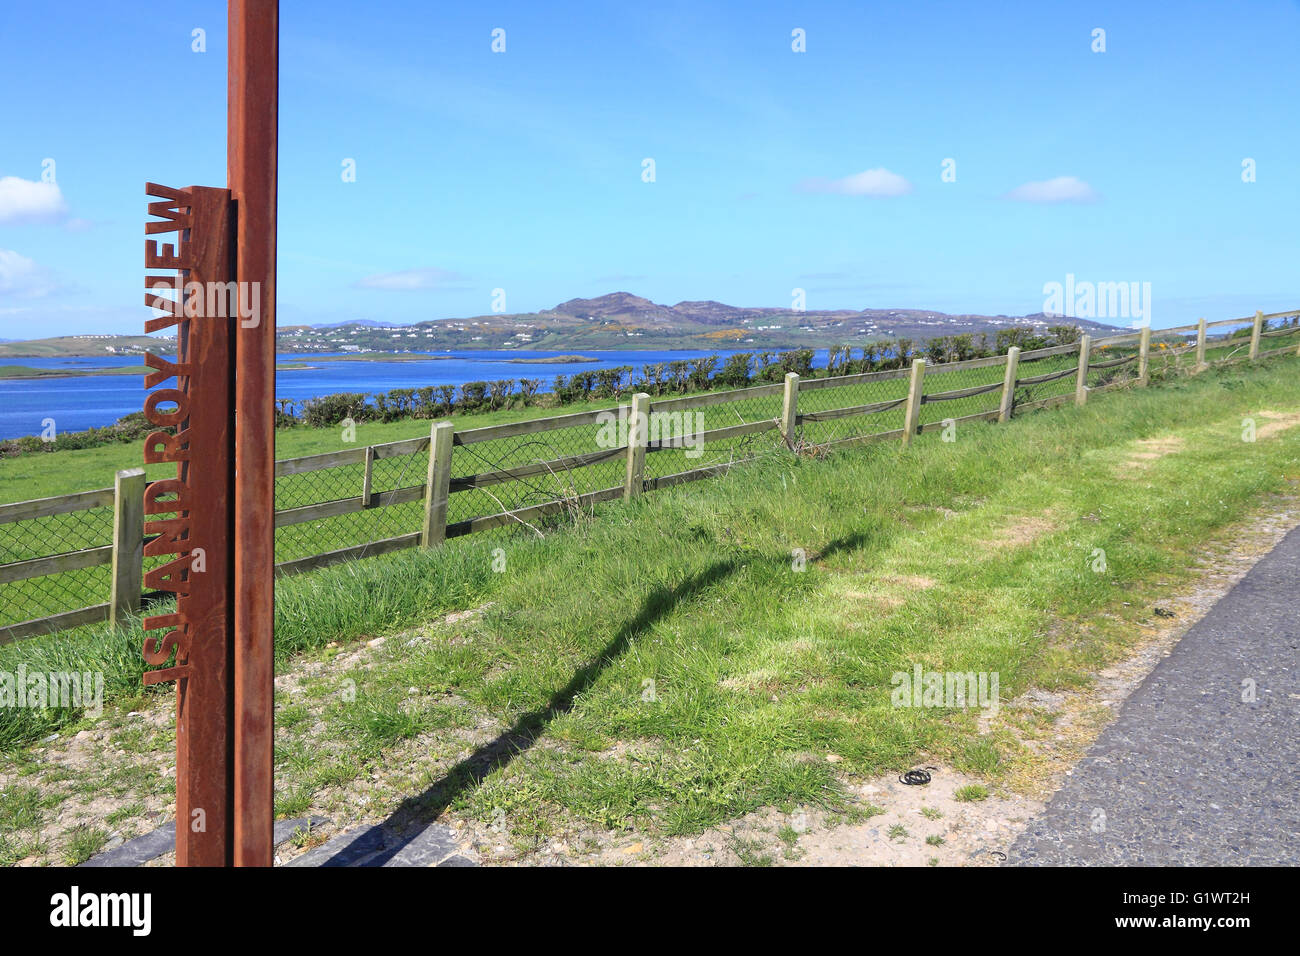 Island Roy View, Fanad, Donegal, Ireland - Stock Image